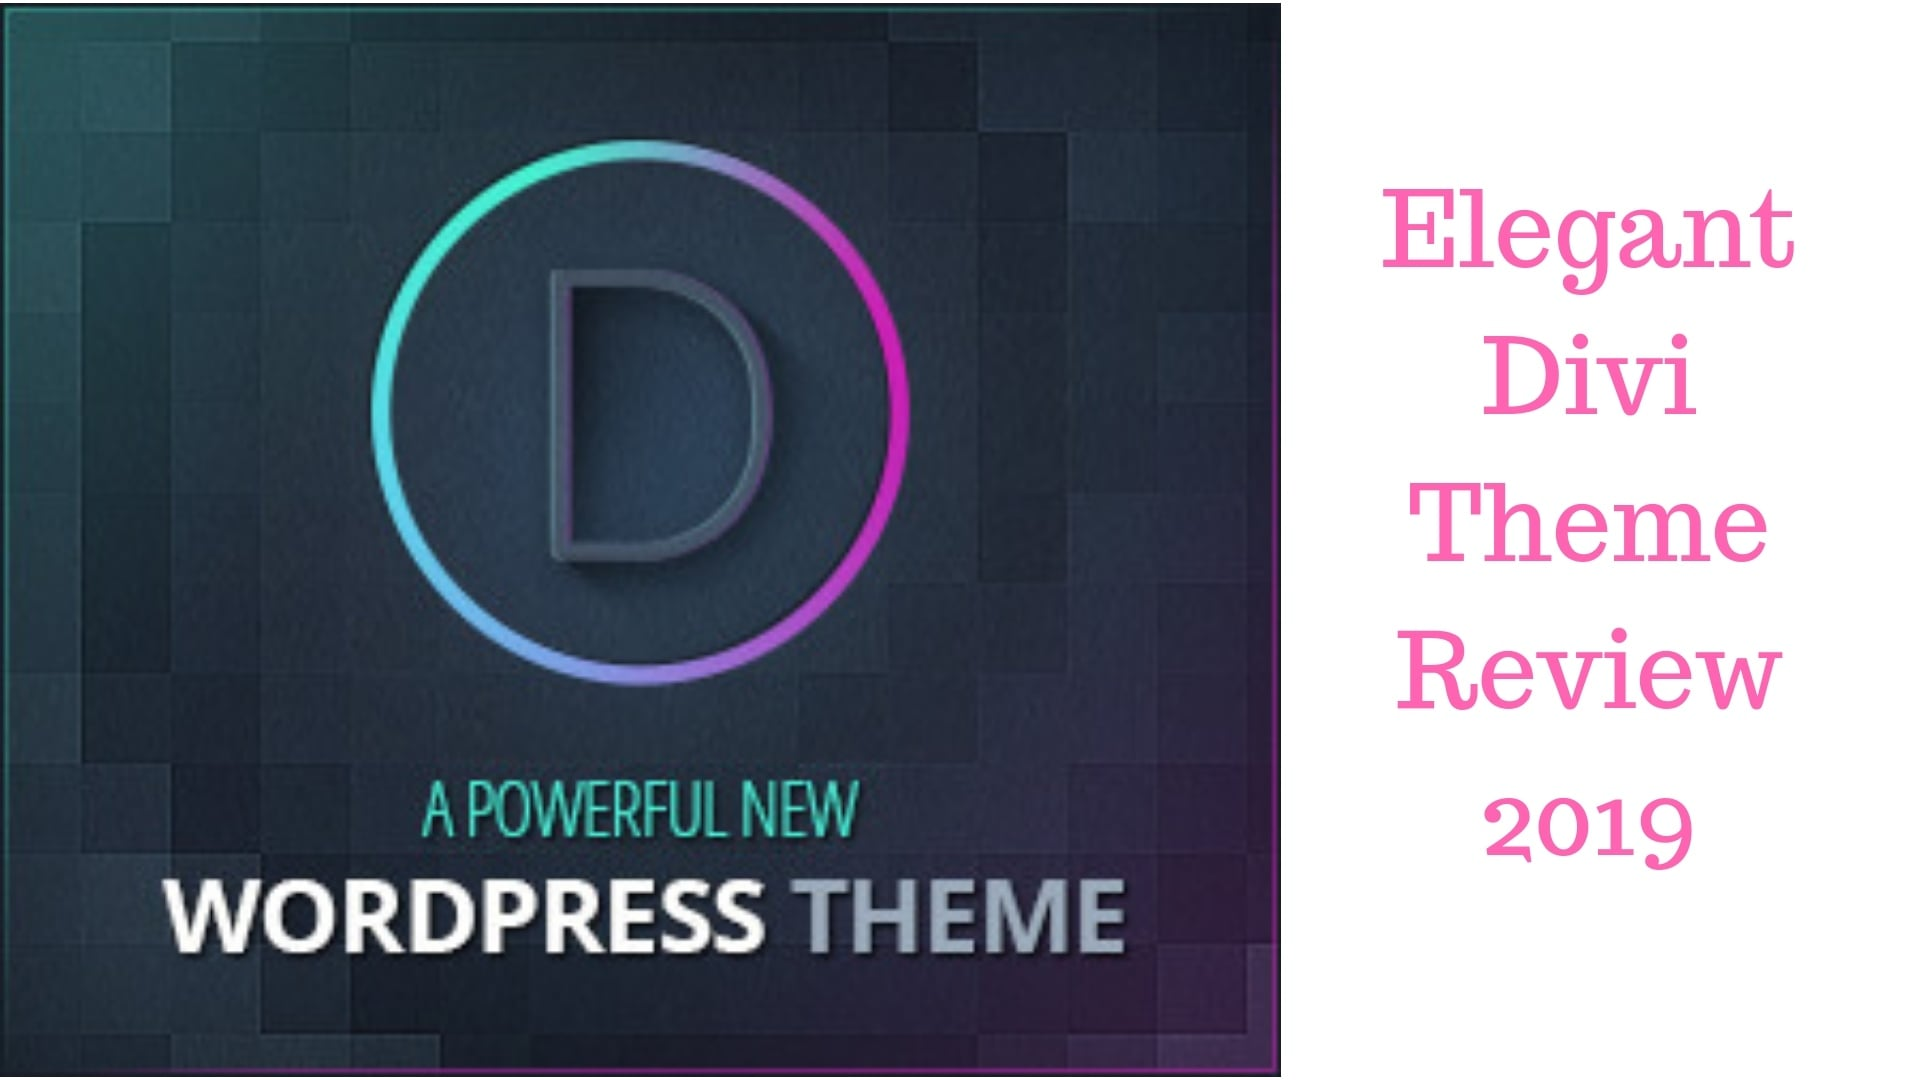 Elegant Divi Theme Review 2019 –Is It Worth For Joining? 11